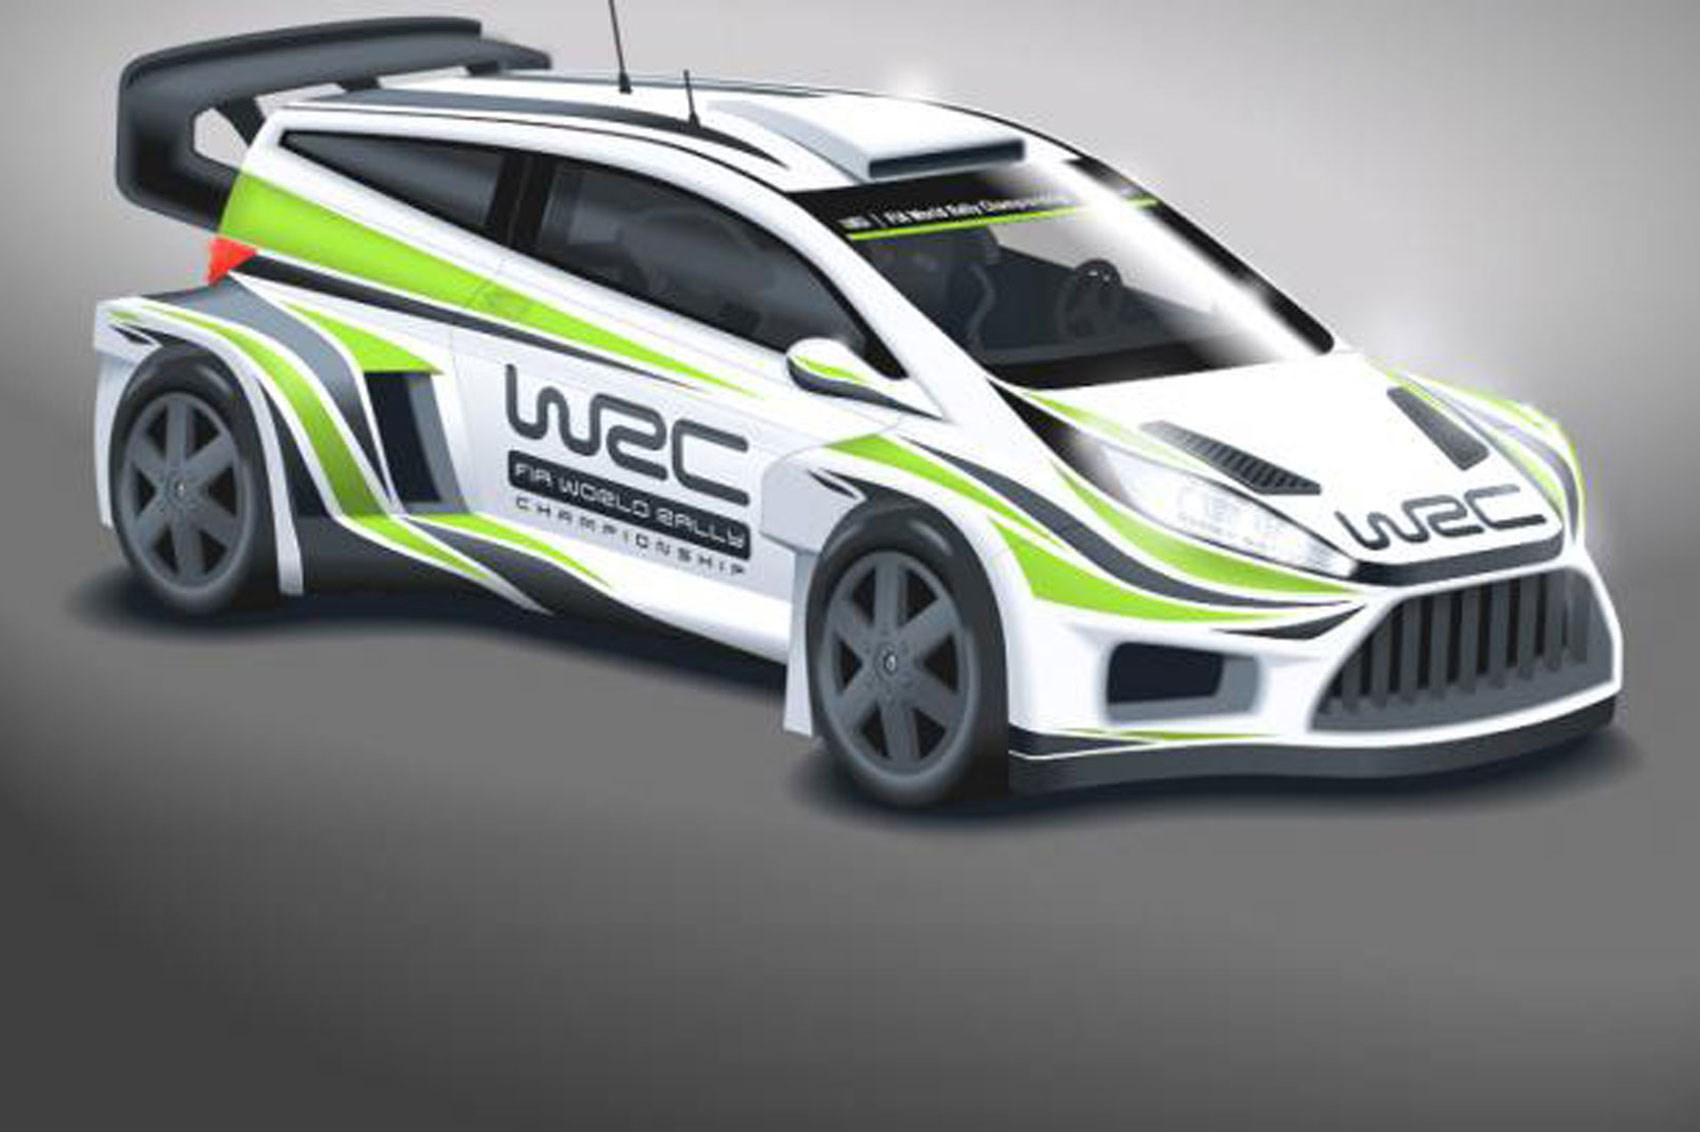 Ultrablogus  Winning Wild New Look For Wrc Cars In  By Car Magazine With Hot Wrc Cars Will Get Wider Bodies Bigger Wings And More Power For  With Beauteous  Toyota Camry Interior Also  Challenger Interior In Addition  Subaru Legacy Interior And Thar Interior As Well As  Audi A Interior Additionally Nissan Altima  Interior From Carmagazinecouk With Ultrablogus  Hot Wild New Look For Wrc Cars In  By Car Magazine With Beauteous Wrc Cars Will Get Wider Bodies Bigger Wings And More Power For  And Winning  Toyota Camry Interior Also  Challenger Interior In Addition  Subaru Legacy Interior From Carmagazinecouk